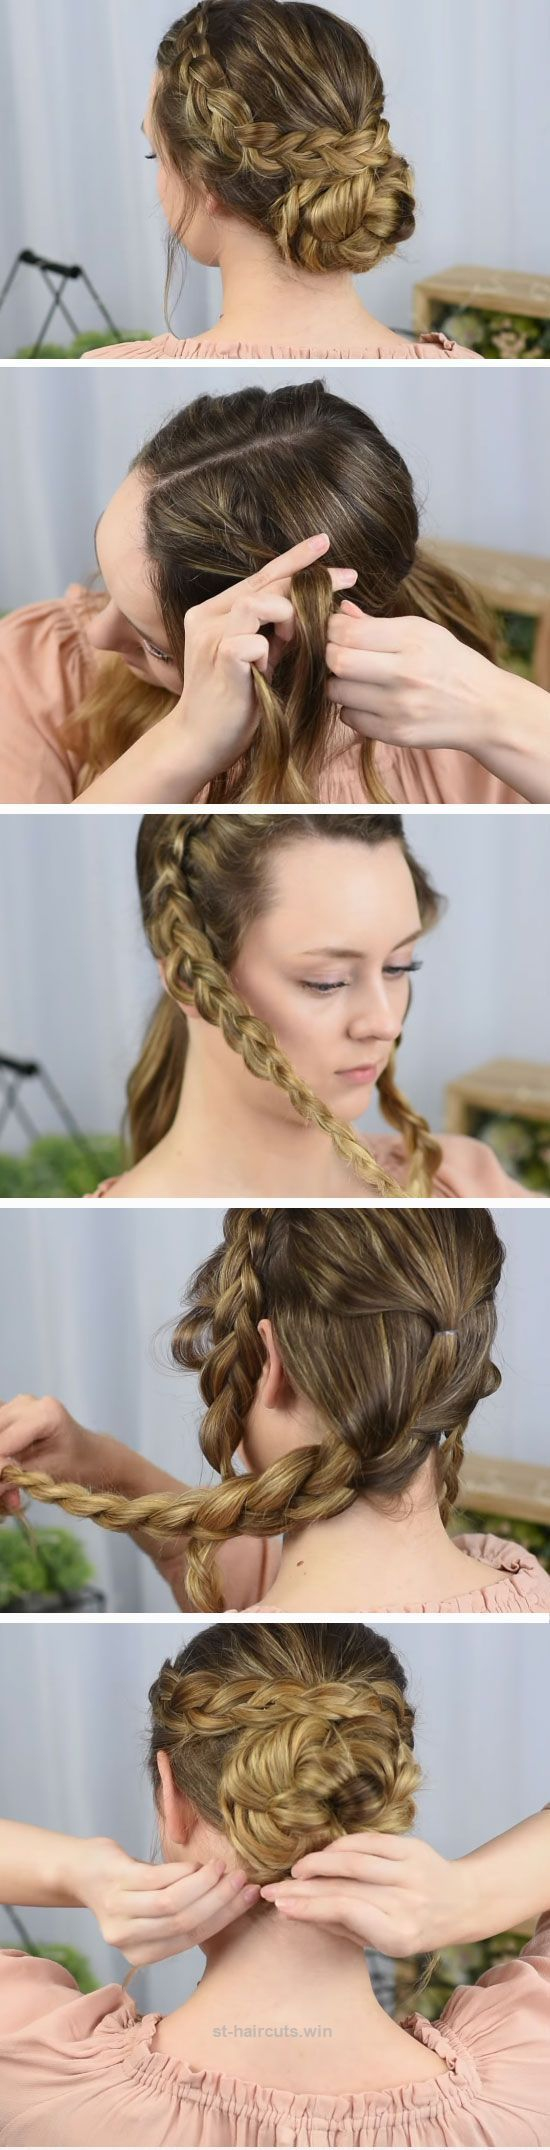 Wonderful Dutch Braided Up-do | Quick DIY Prom Hairstyles for Medium Hair | Quick and Easy Homecoming Hairstyles for Long Hair  The post  Dutch Braided Up-do | Quick DIY Prom  ..